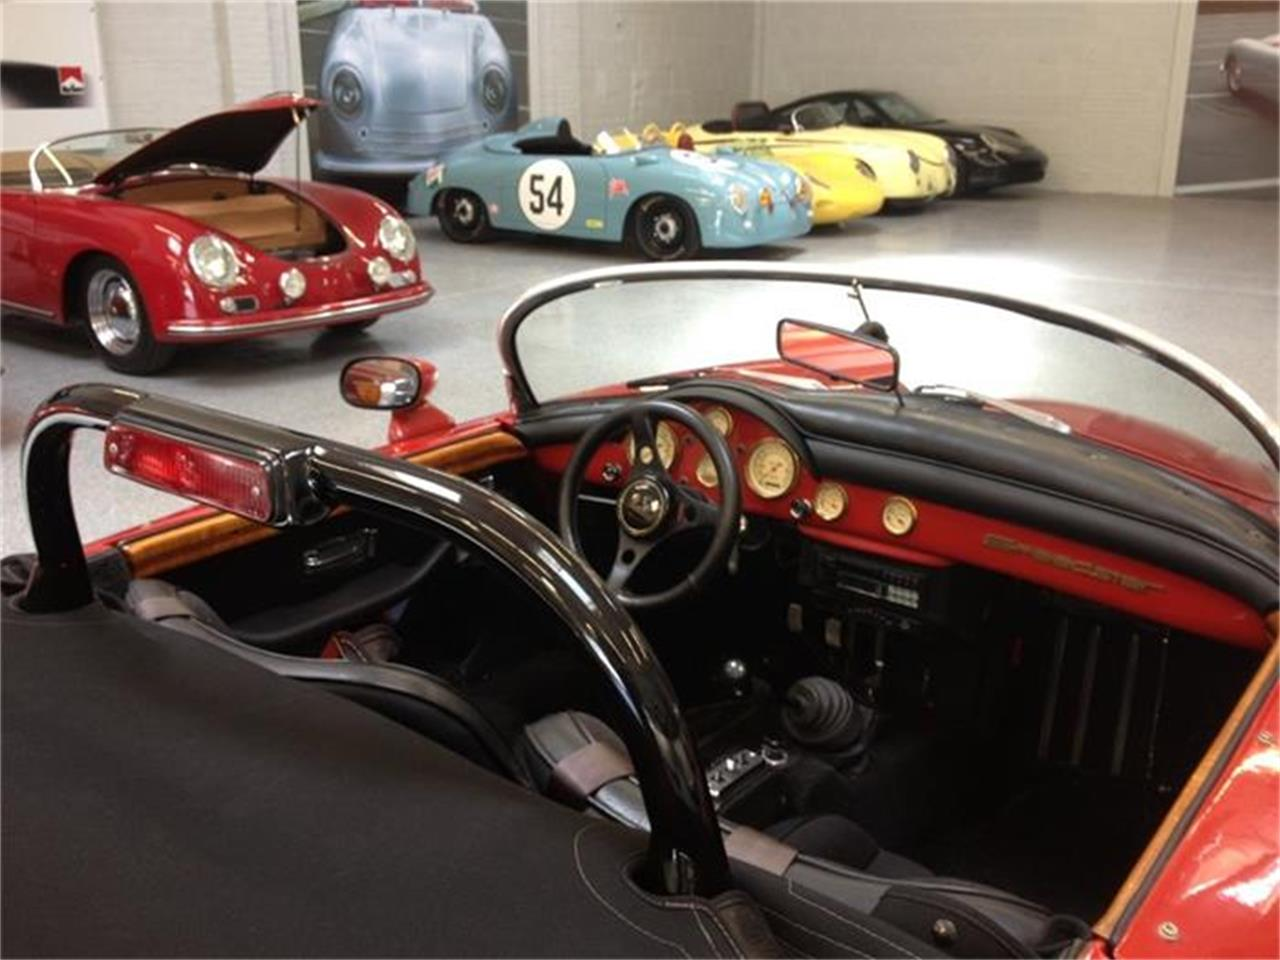 1957 Porsche Outlaw Speedster for sale in Oceanside, CA – photo 7